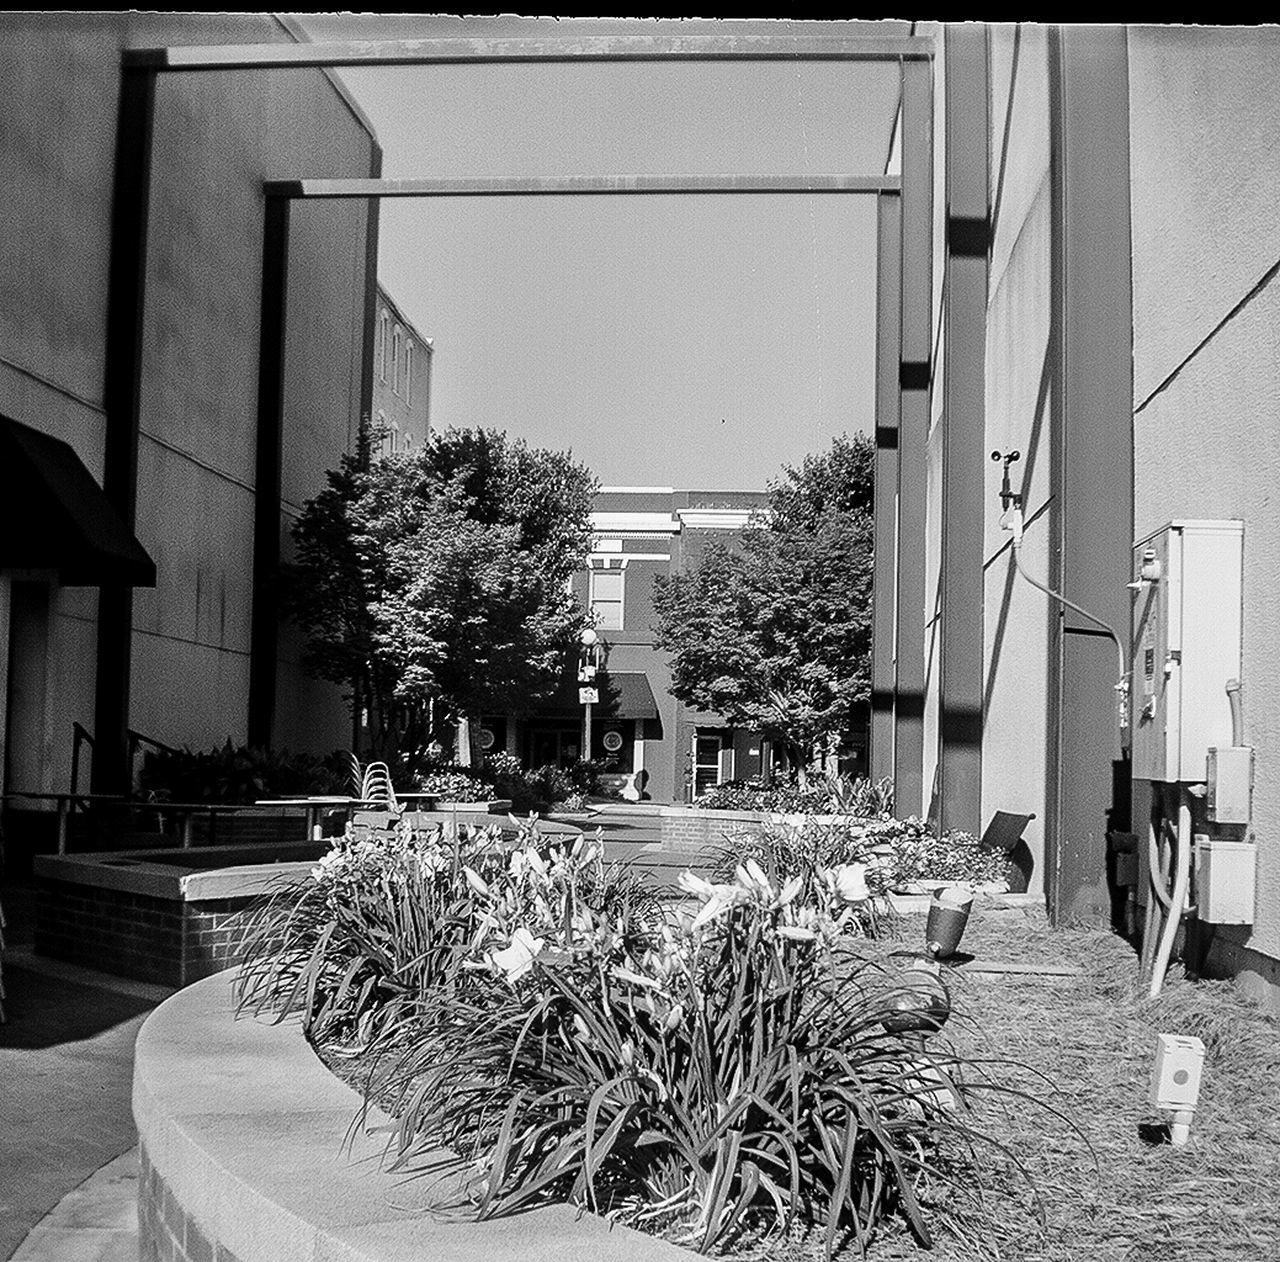 Architecture Blackandwhite Building Exterior Built Structure City Clear Sky Day Eye4photography  Film Photography Kodakbrownie Nature No People Outdoors Plant Sky Tree